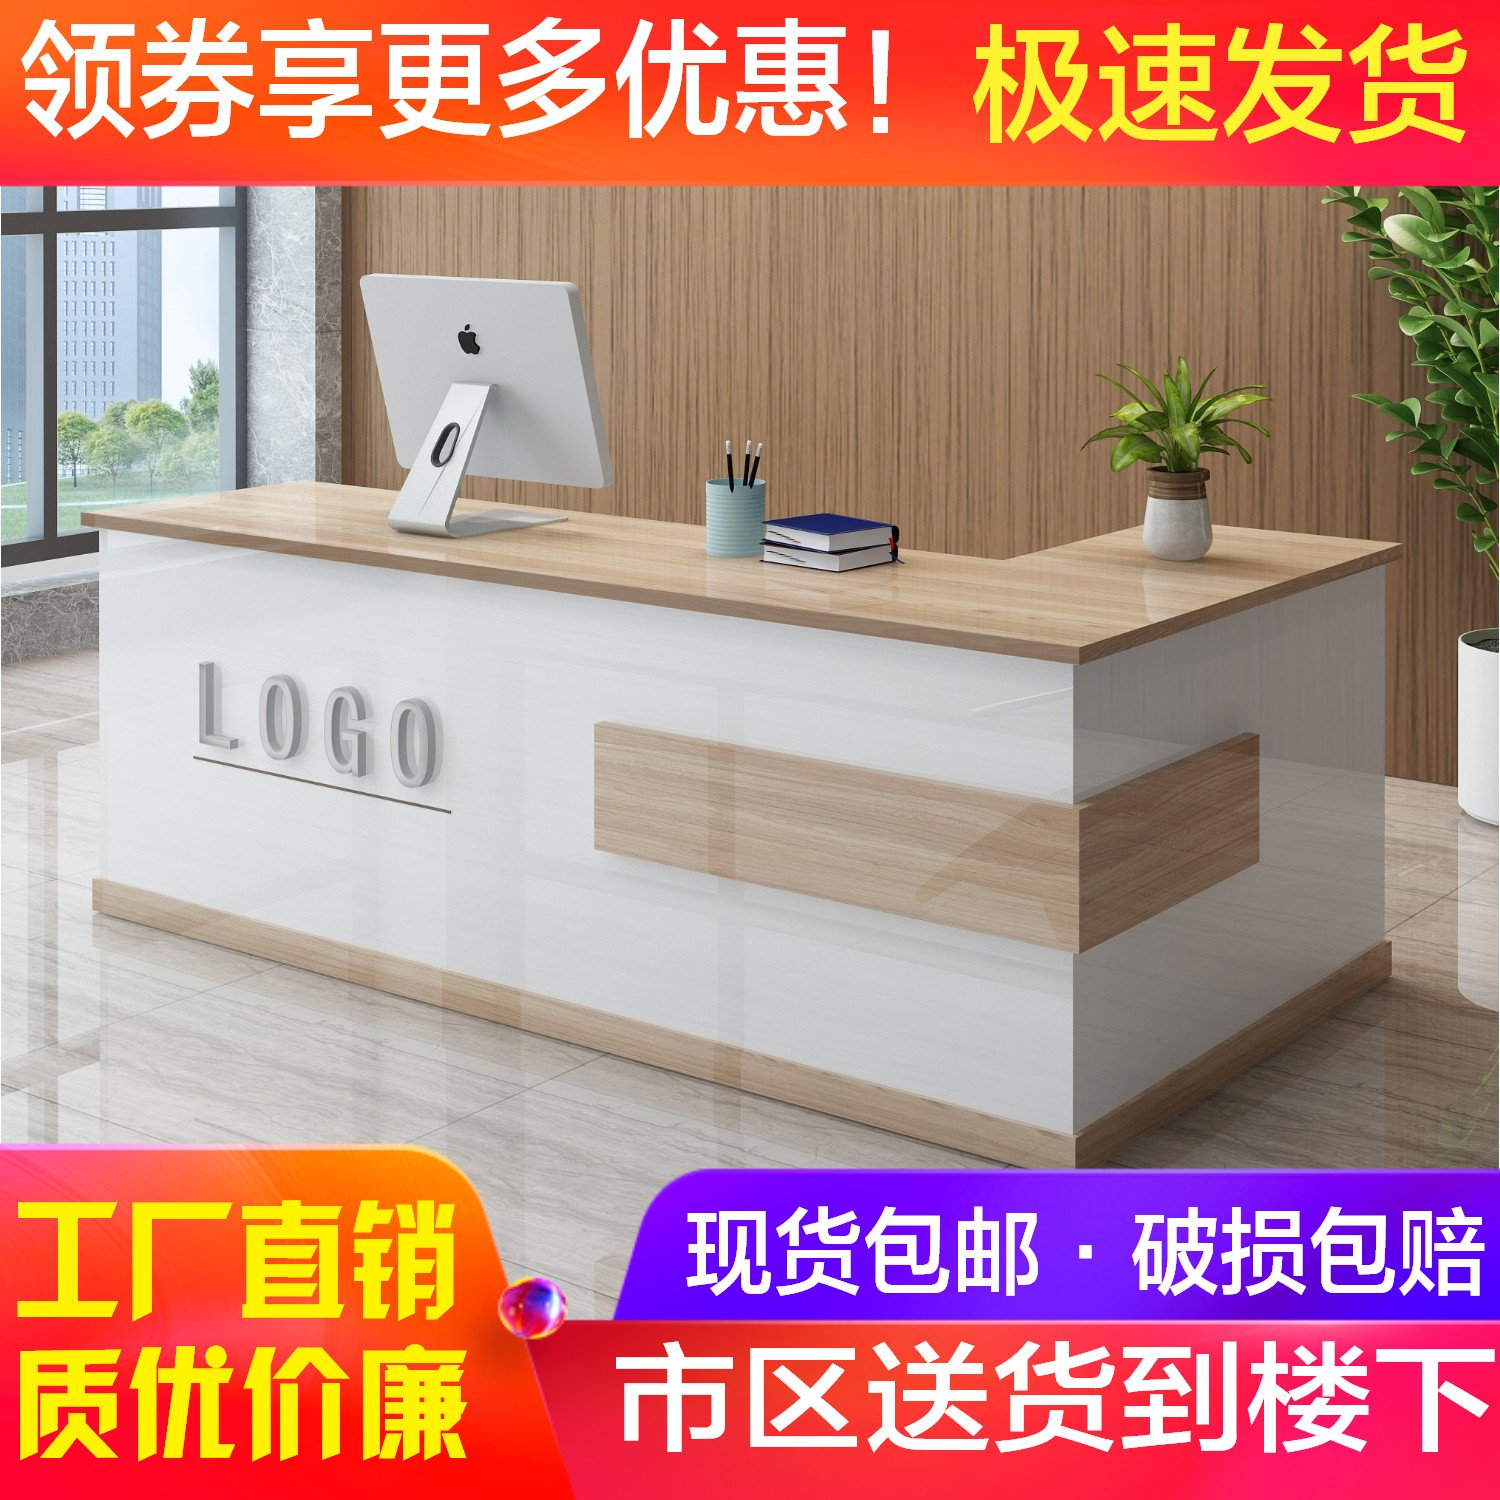 Reception Desk Shop Cashier Counter Bar Counter Large Corner Grilled Small Simple Modern Creative Paint Front Desk